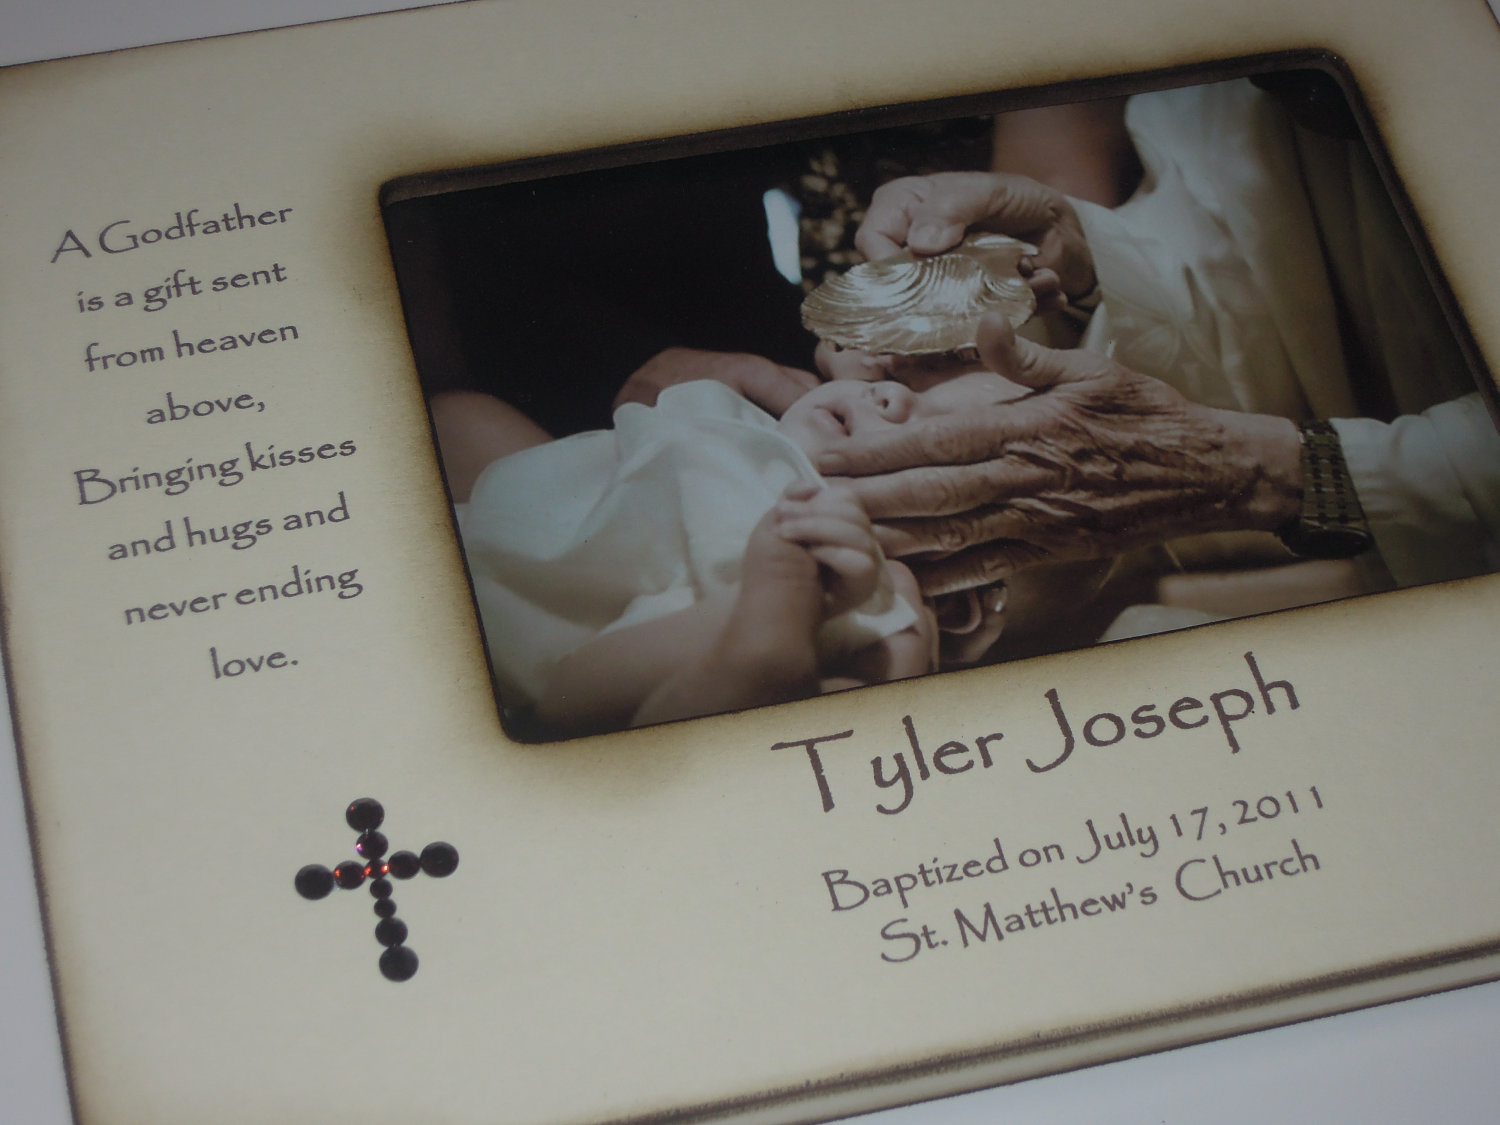 Baptism From Godparents Quotes. QuotesGram